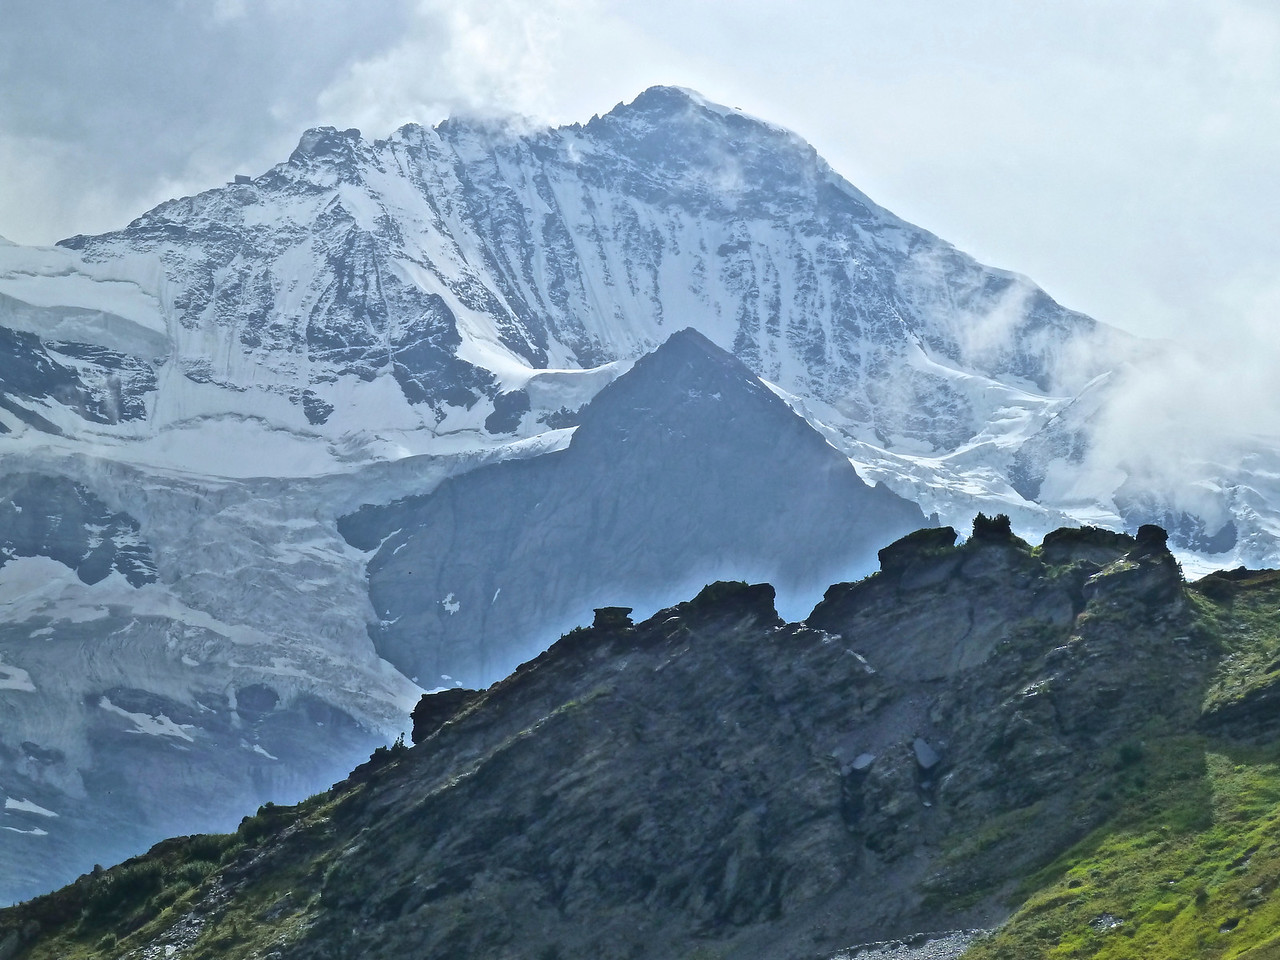 This is the impressive Jungfrau (Virgin) Mountain at 13,642 ft! We waited forever for the clouds to lift to get this shot!!